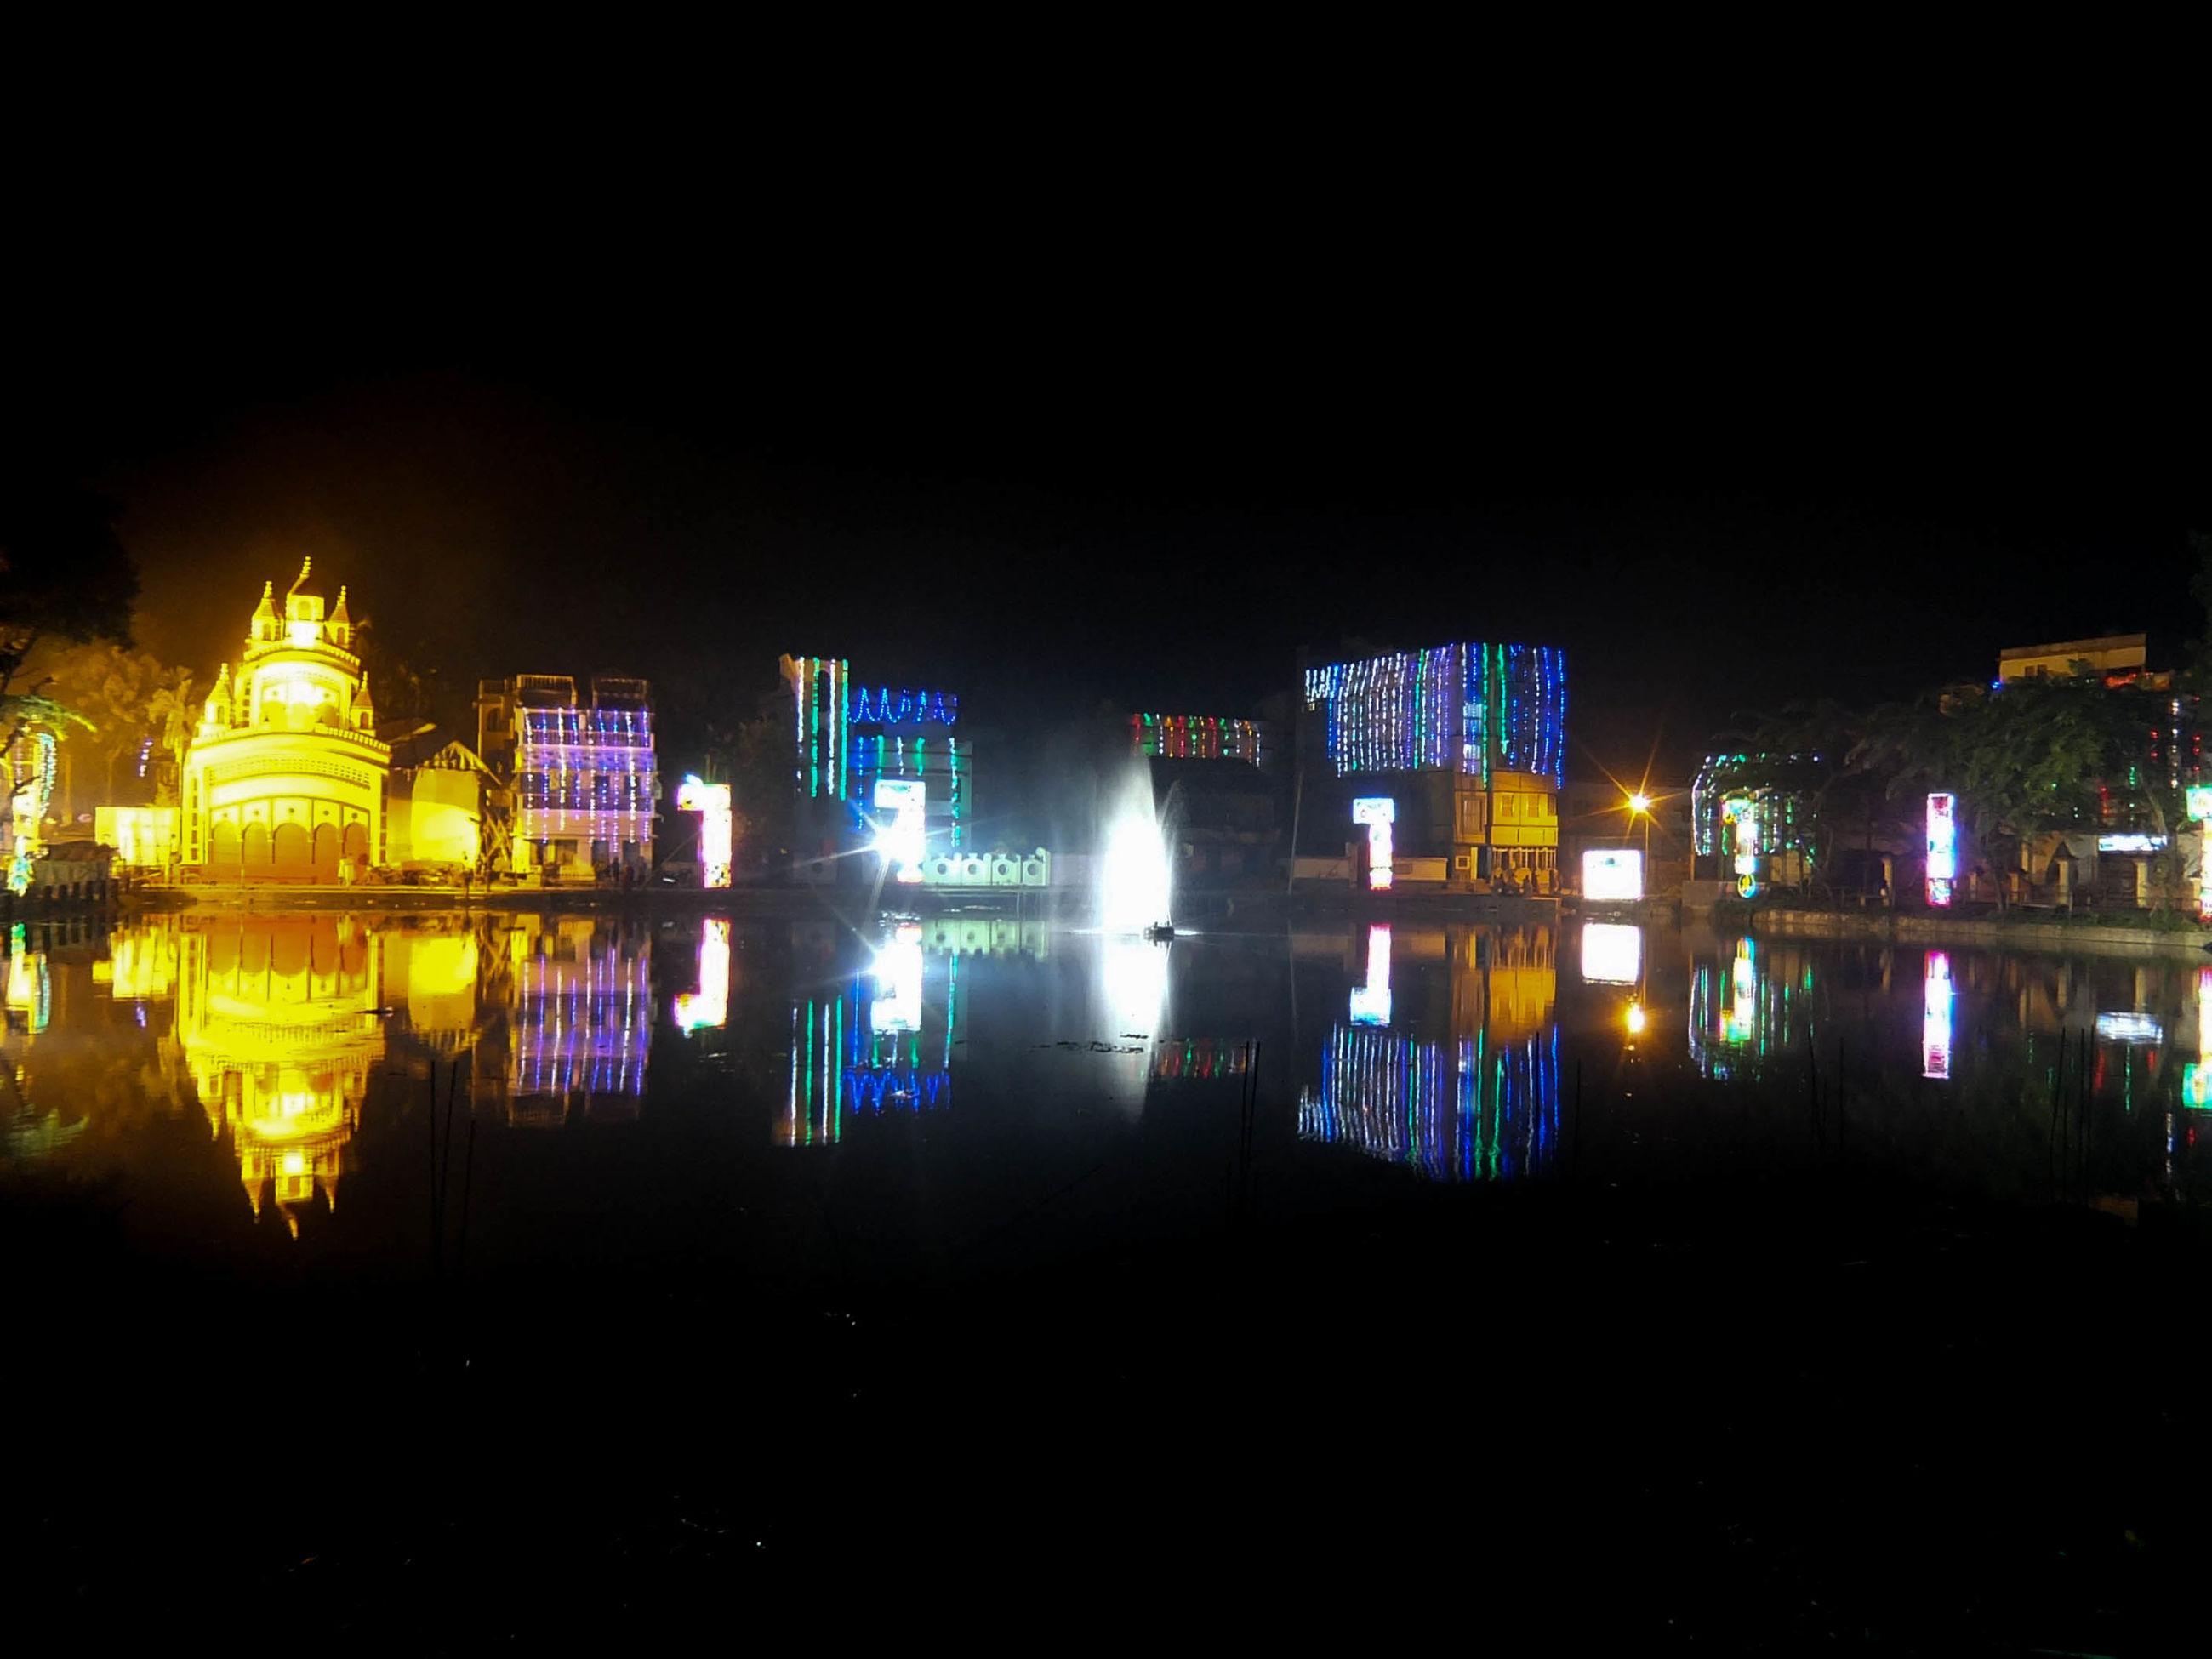 illuminated, night, architecture, building exterior, built structure, reflection, water, city, lighting equipment, waterfront, light - natural phenomenon, copy space, building, multi colored, clear sky, dark, modern, river, outdoors, sky